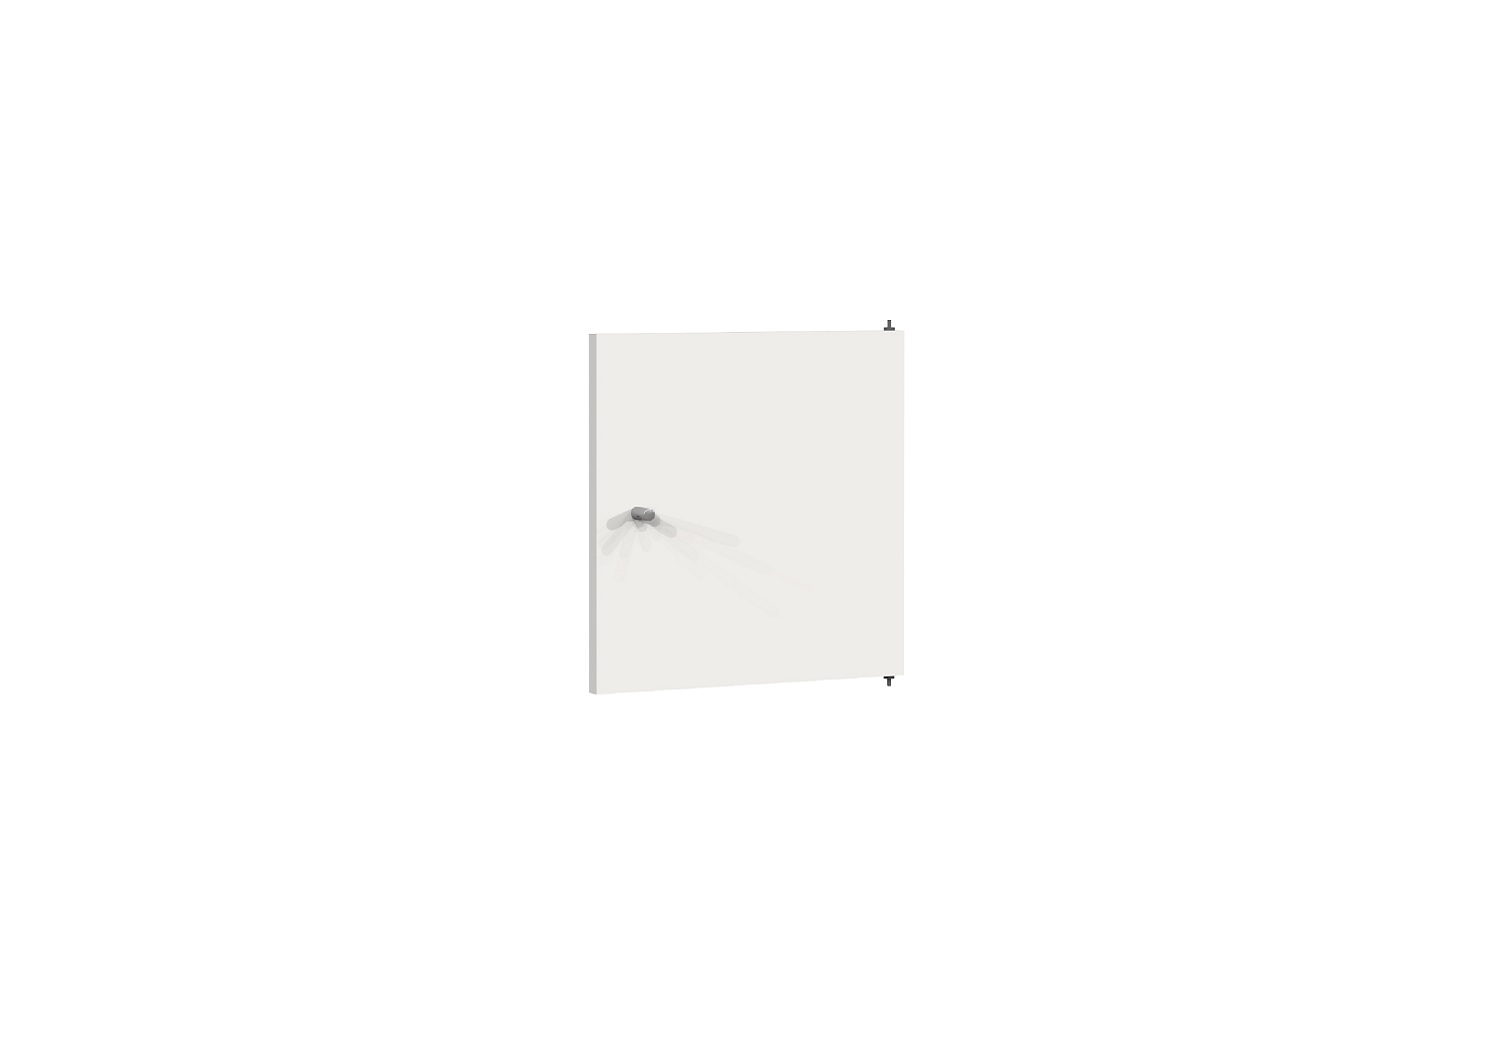 Bilrich Storage Furniture - Multi Kaz Accessory Door White